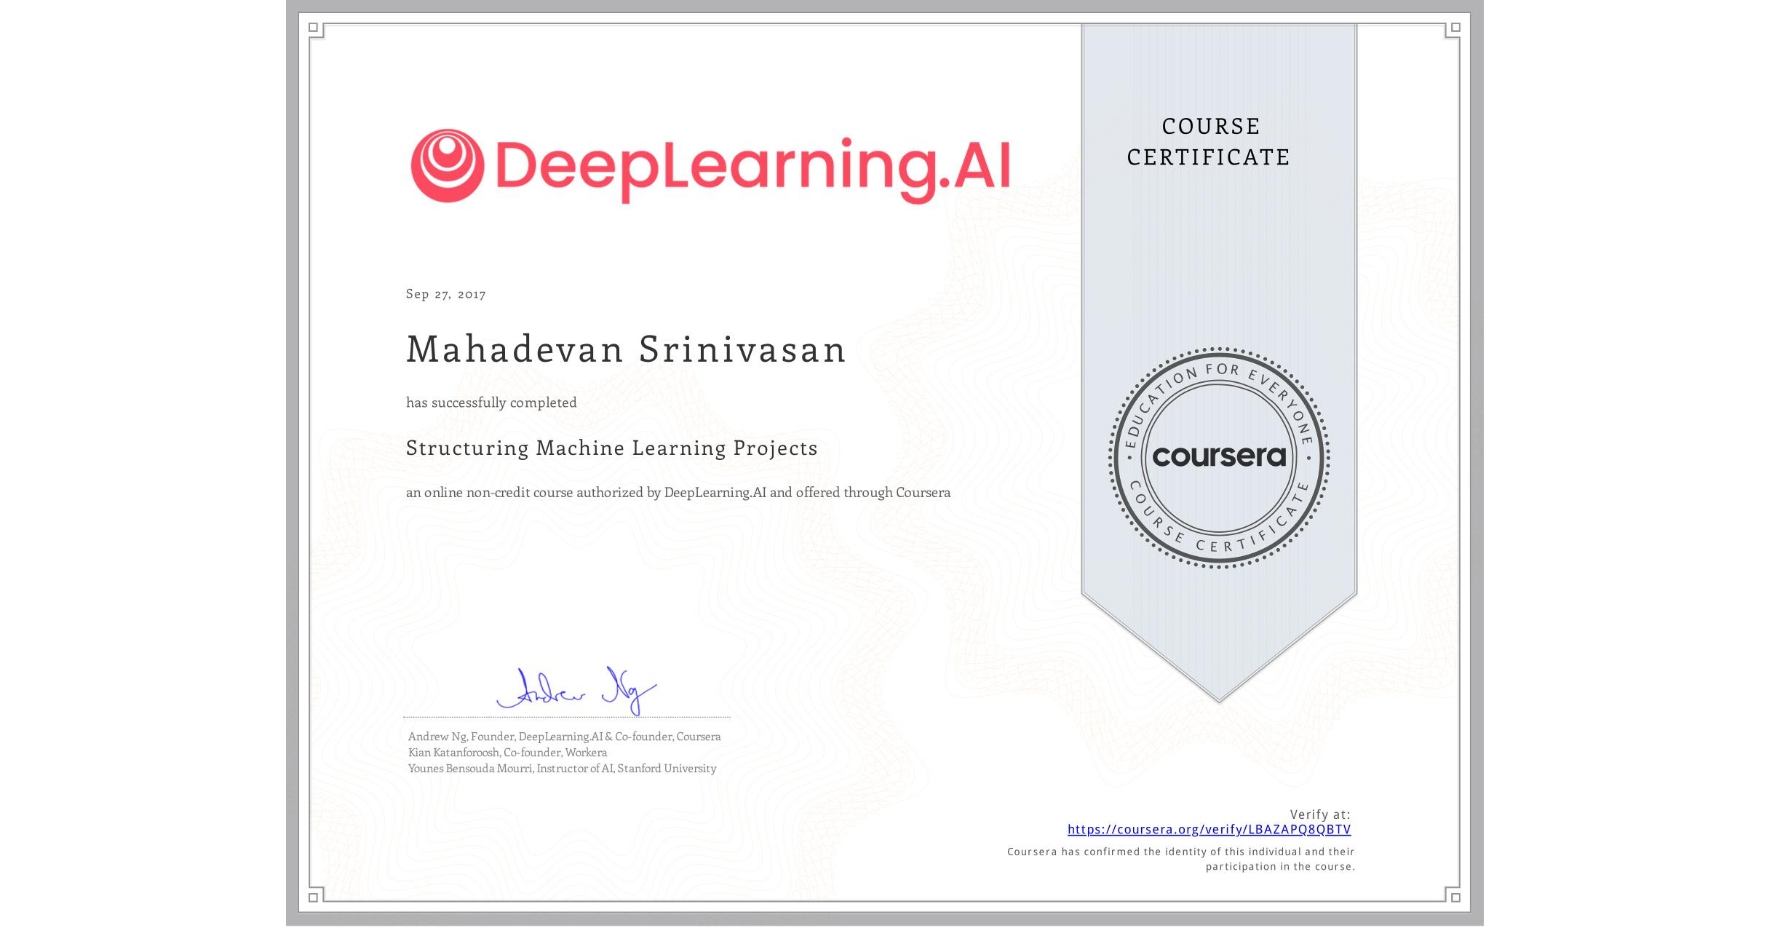 View certificate for Mahadevan Srinivasan, Structuring Machine Learning Projects, an online non-credit course authorized by DeepLearning.AI and offered through Coursera